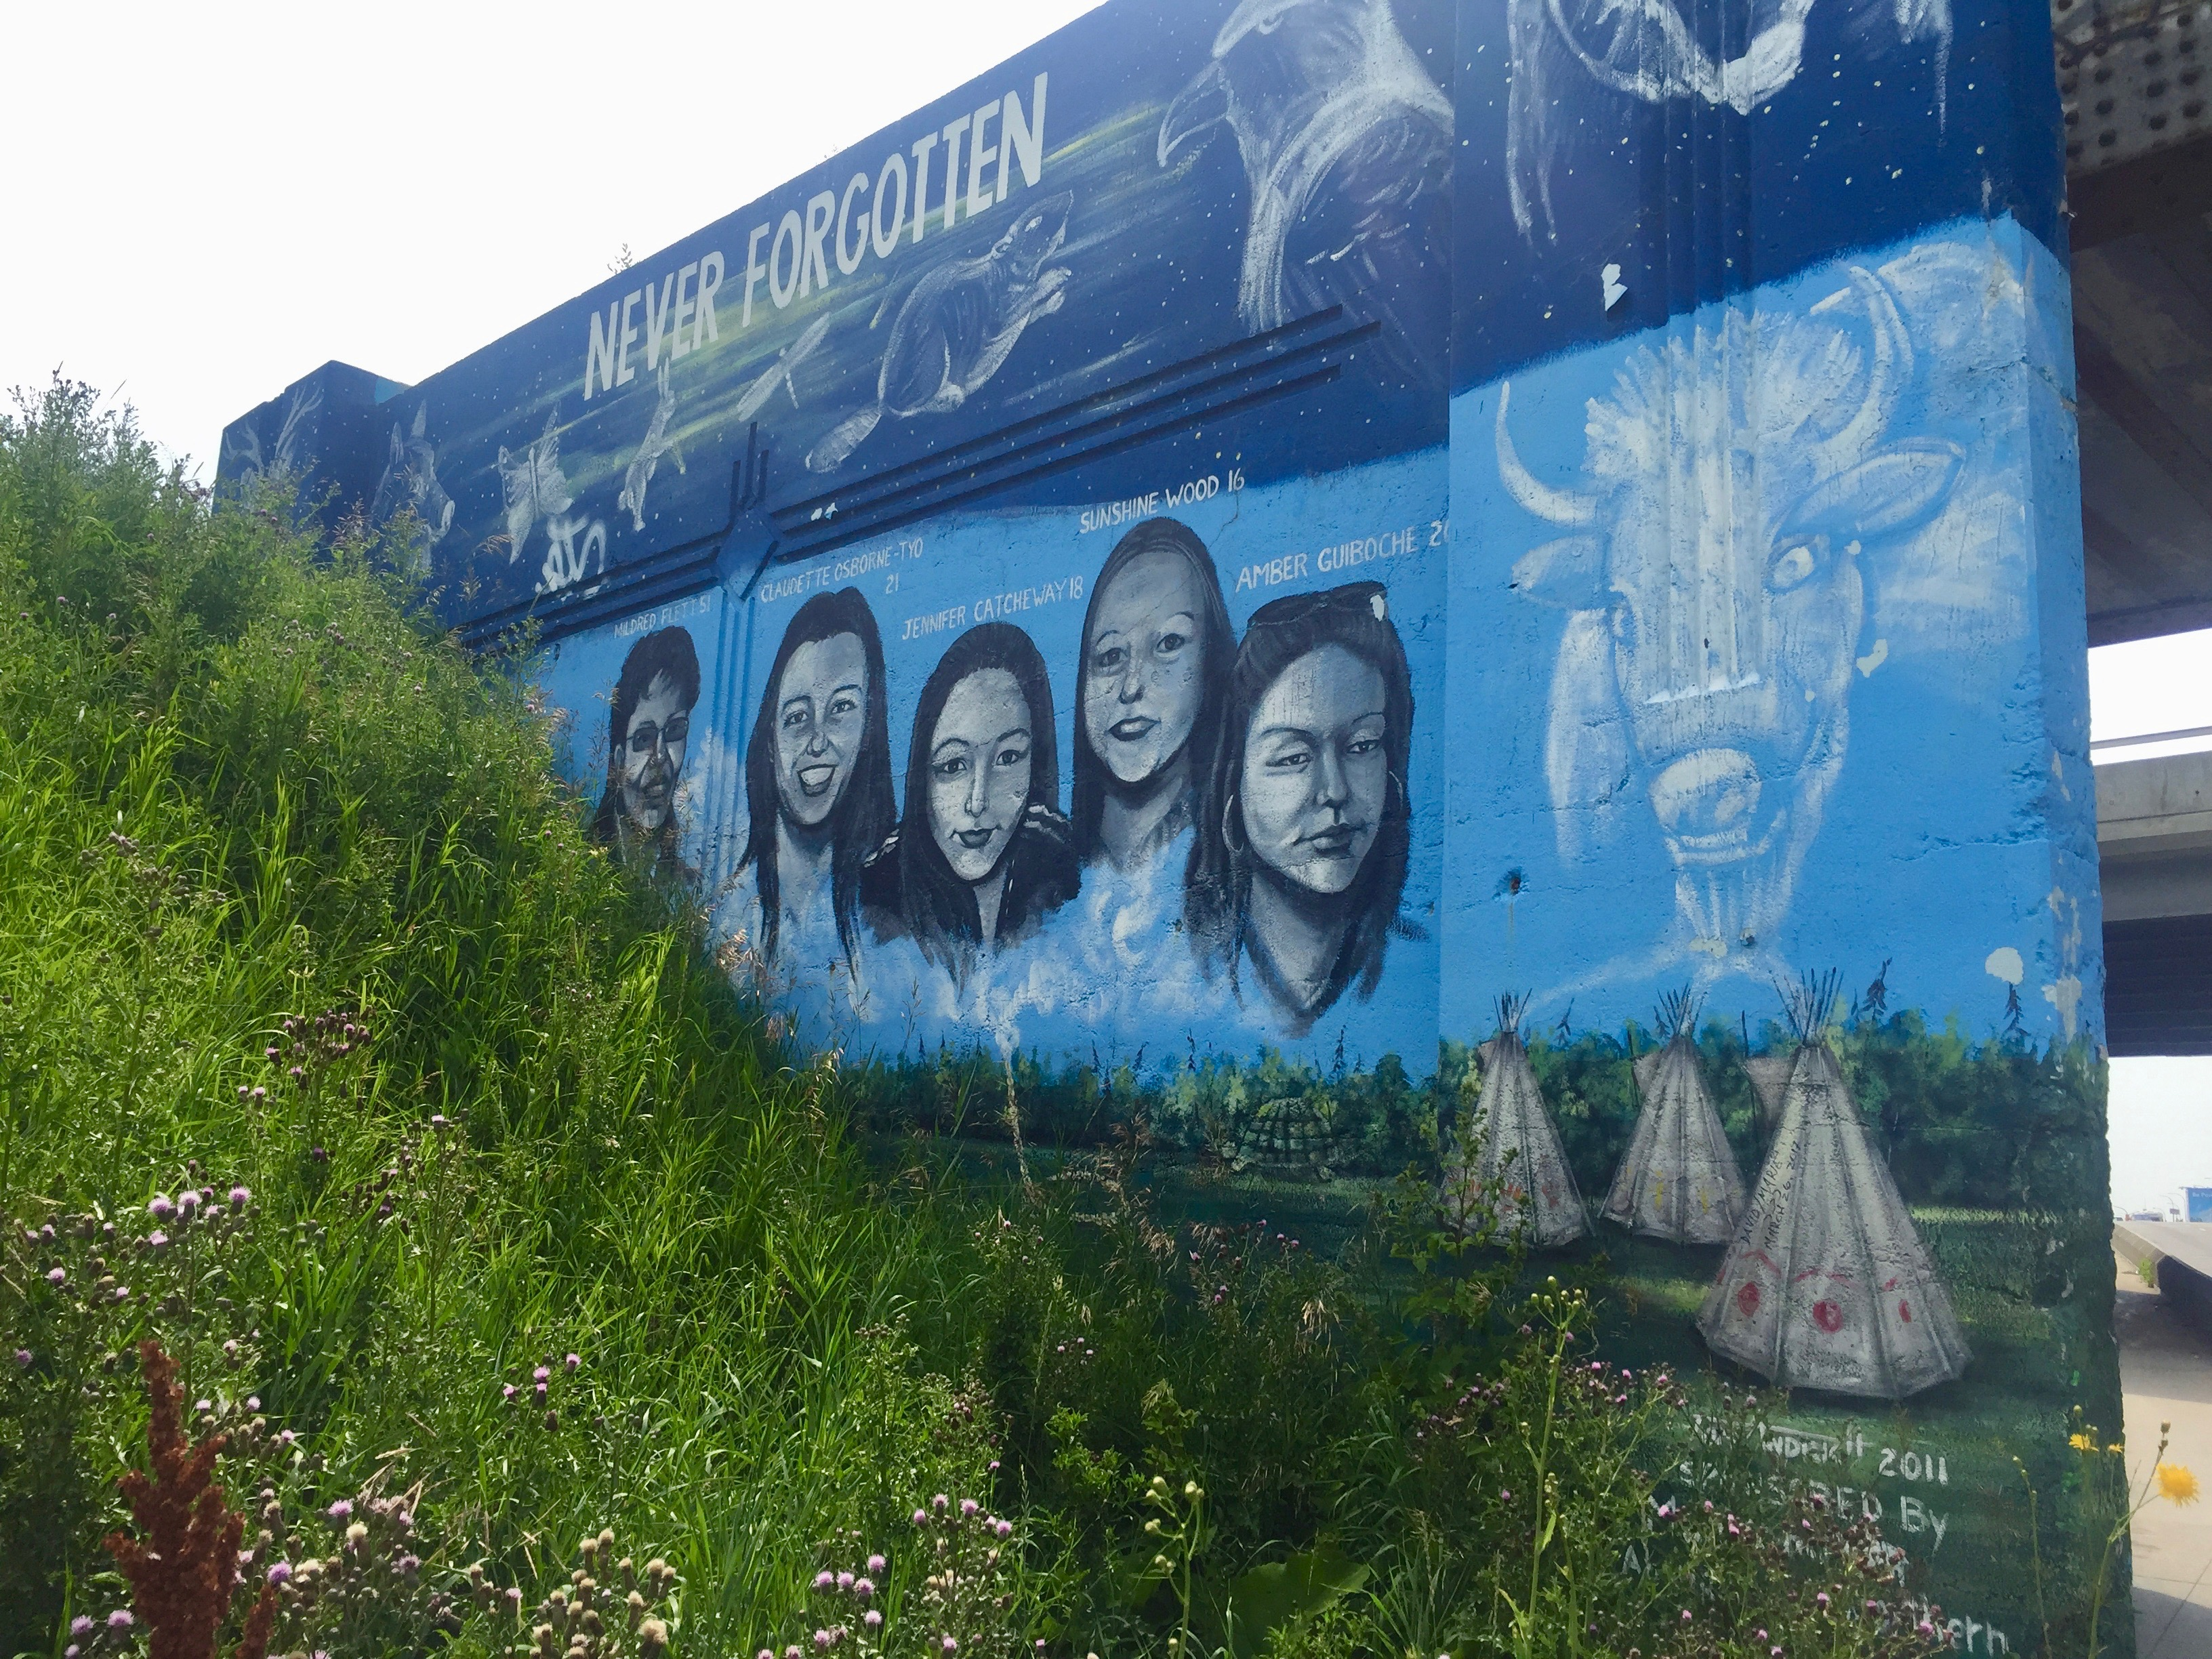 Mural for MMIWG by Tom Andrich on Portage Ave in Winnipeg. Image courtesy of Caroline Doenmez.